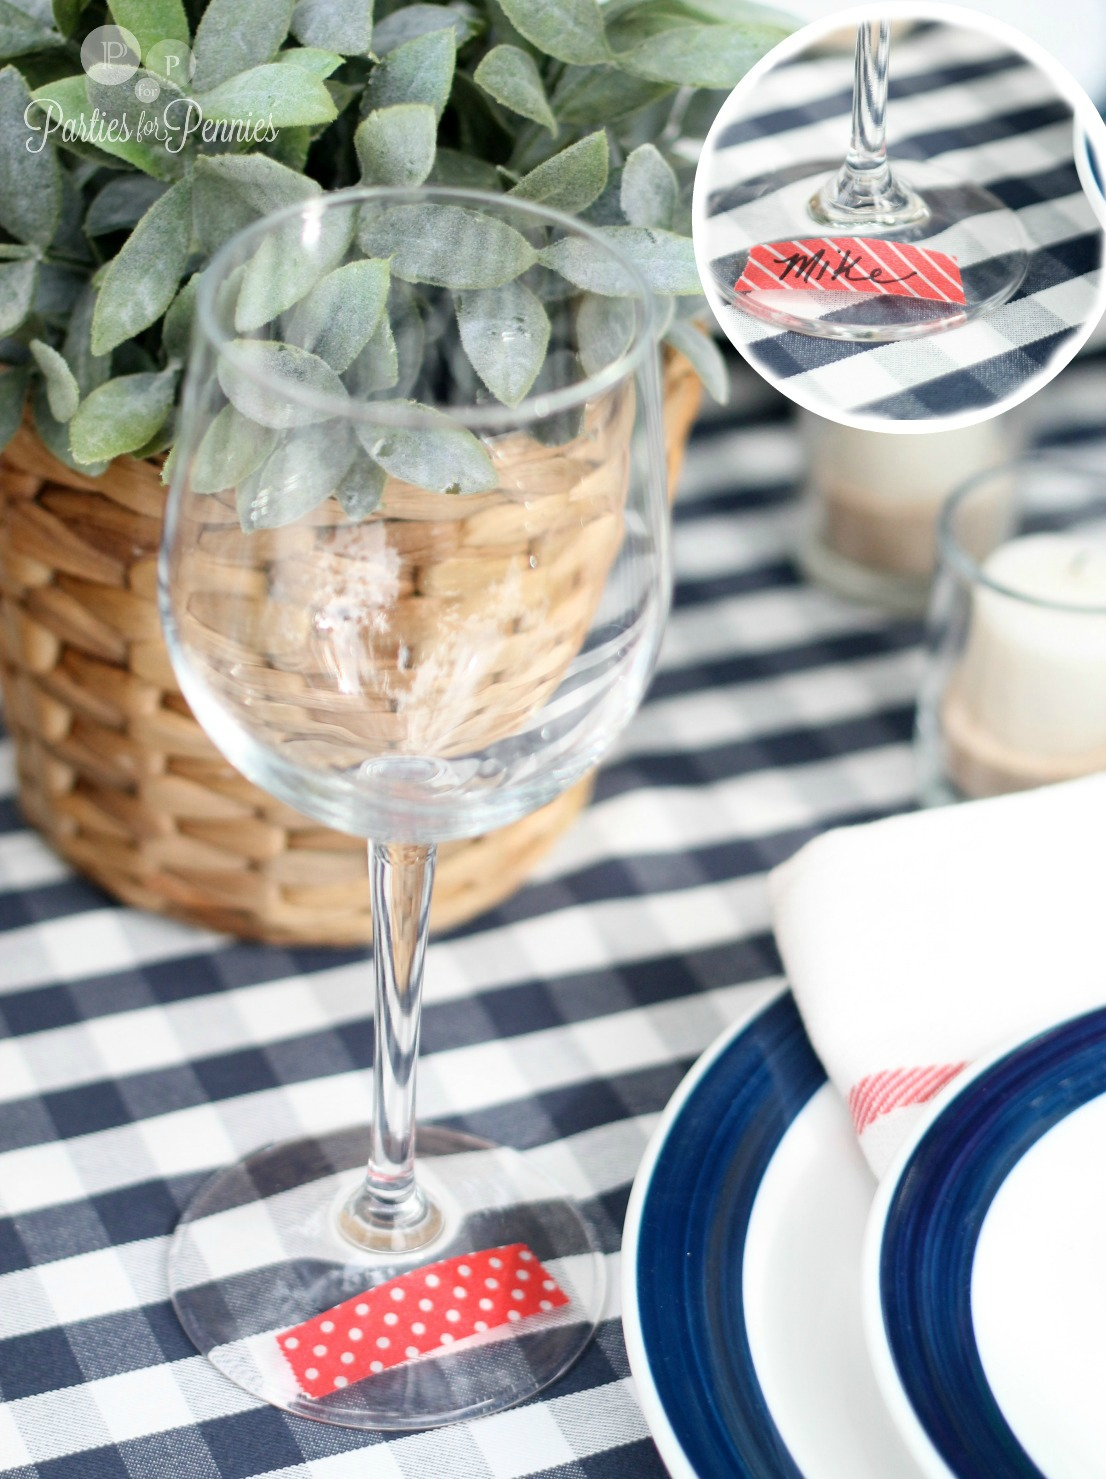 Labor Day Party by PartiesforPennies.com washi tape glass markers